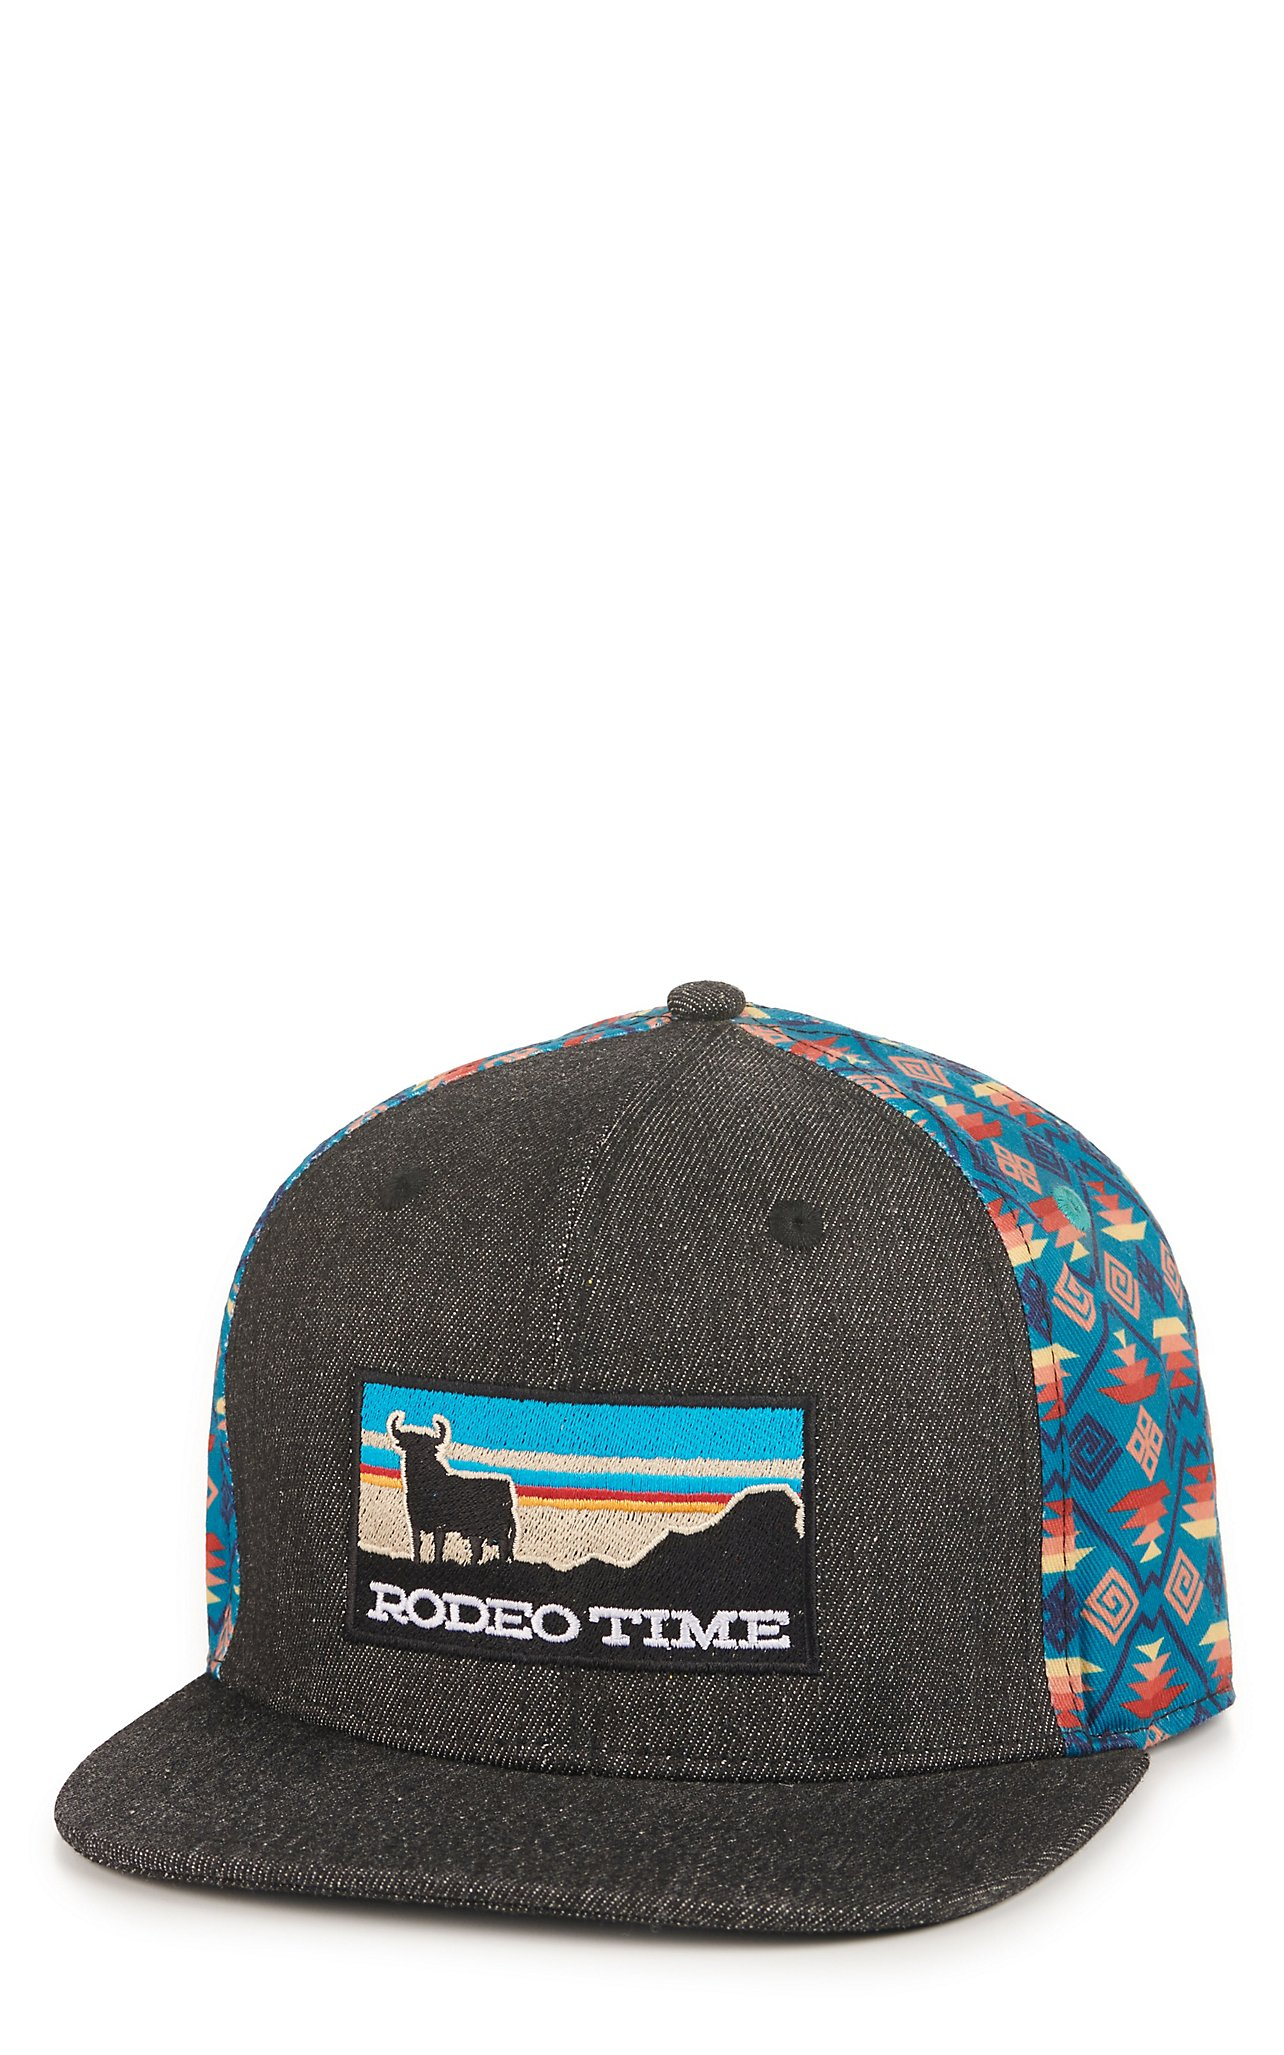 Rodeo Time Dale Brisby Heather Grey Rodeo Time Patch Snap Back Cap ... 6a22dd94b1c3